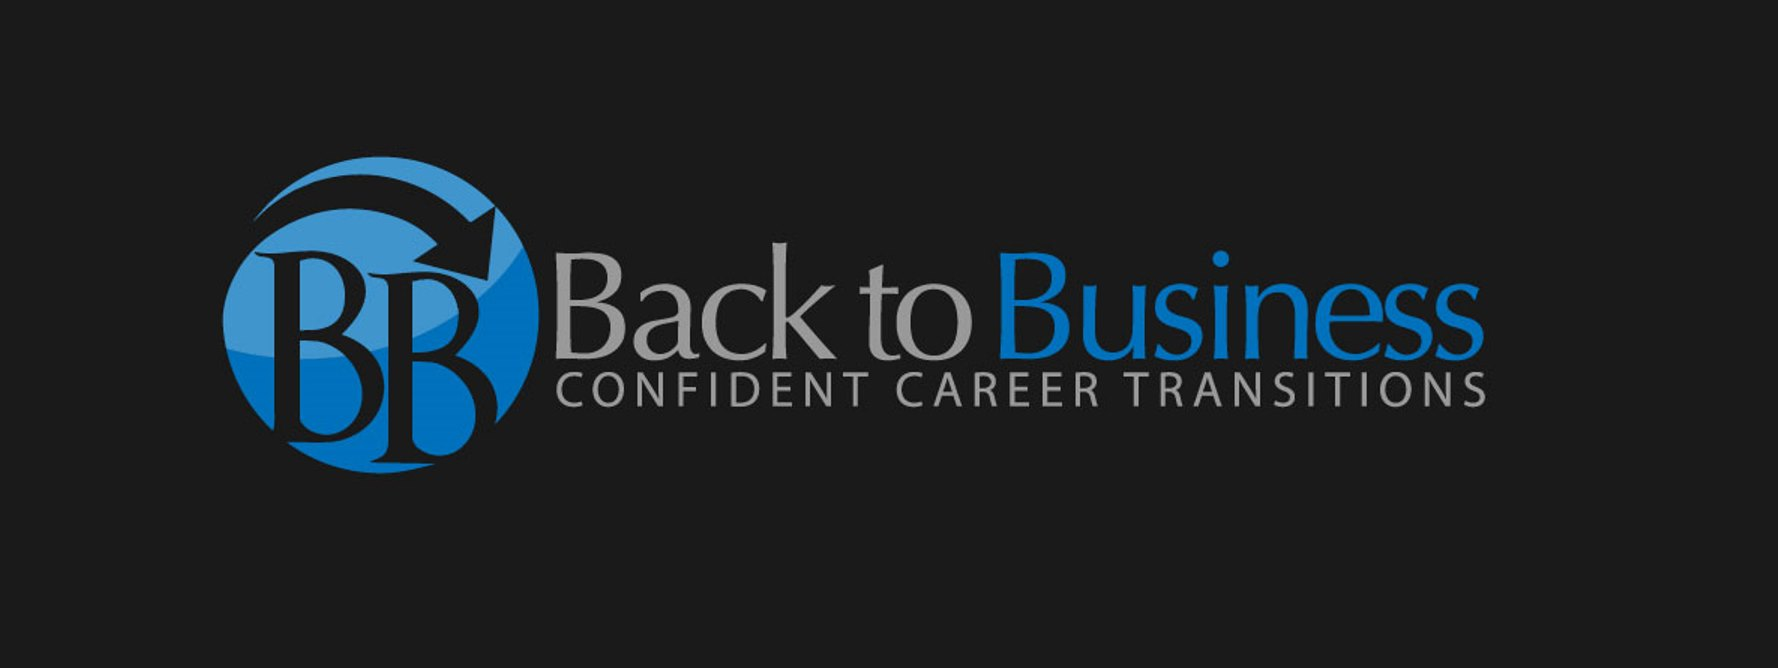 Back to Business, confident career transitions